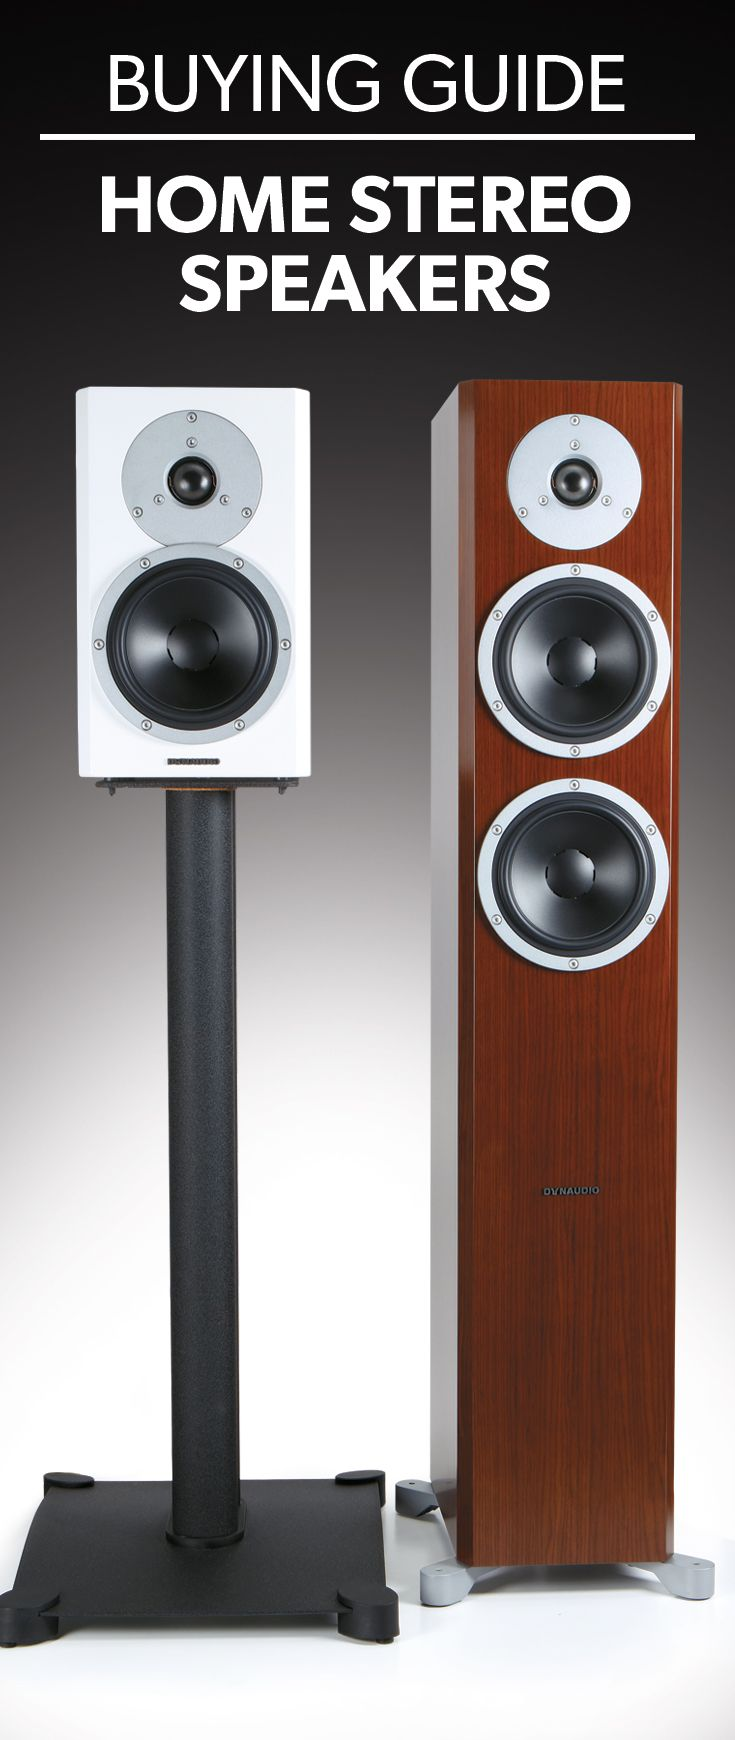 Home stereo speakers buying guide | Audio for Your Home | Pinterest | Stereo  speakers, Home stereo speakers and Hifi audio